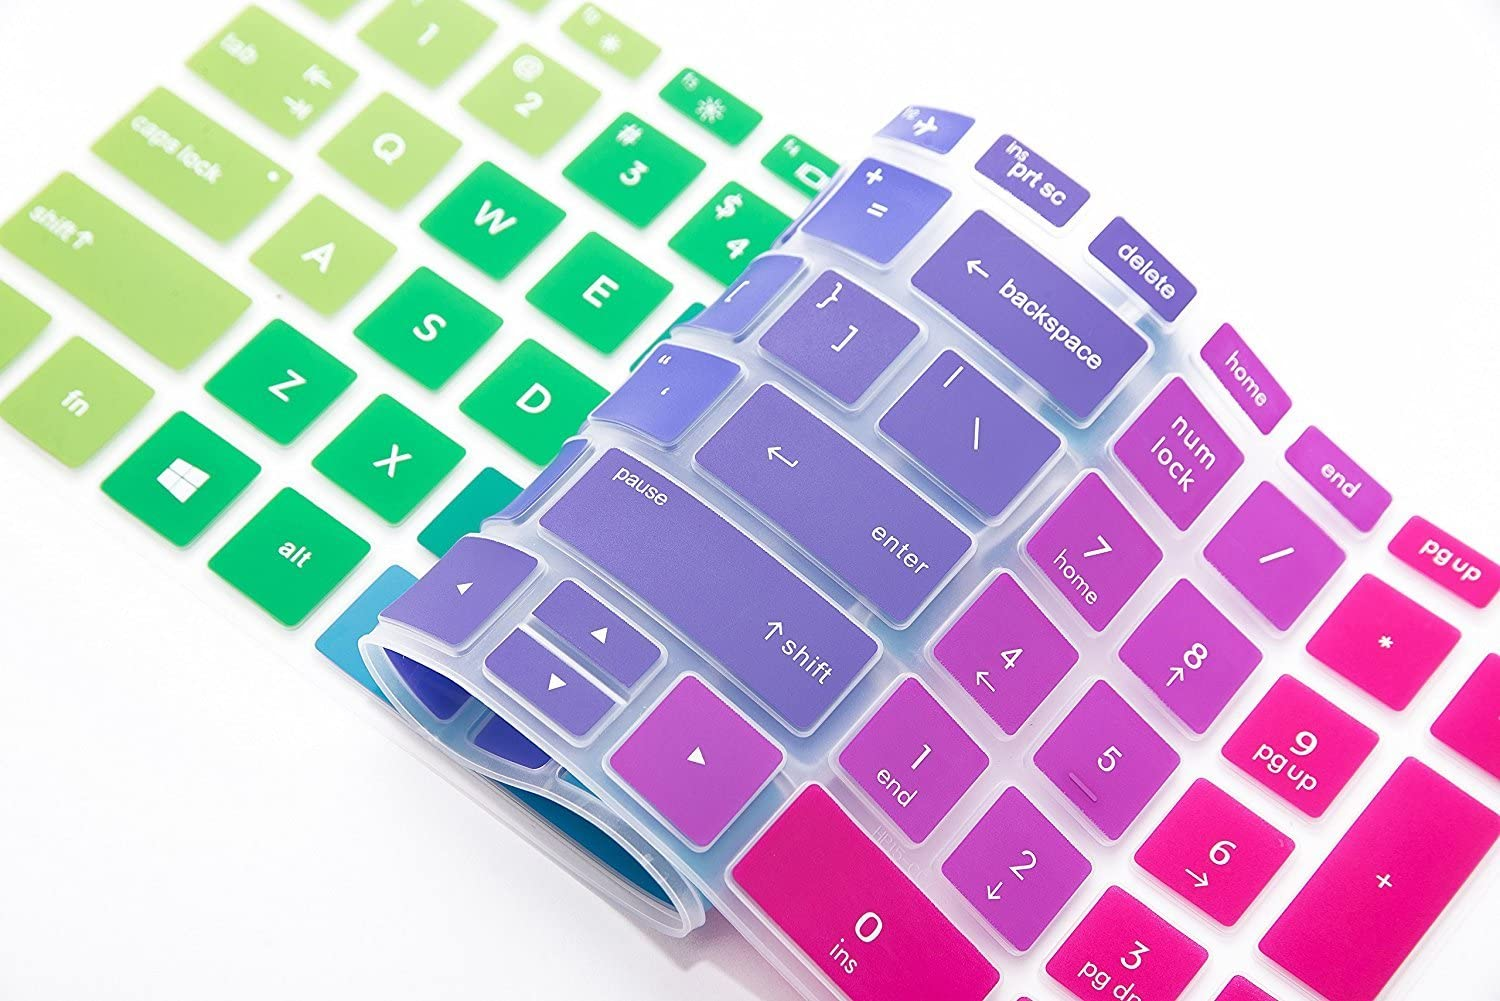 Gradual Purple 17.3 HP 17m ae series ae011dx ae111dx Laptop Leze Ultra Thin Keyboard Cover for HP Pavilion 15-cc010nr 15-cc020nr 15-bw069nr 15-bw070nr 15-bs015dx 15-bs013dx 17-bs019dx 17-bs049dx